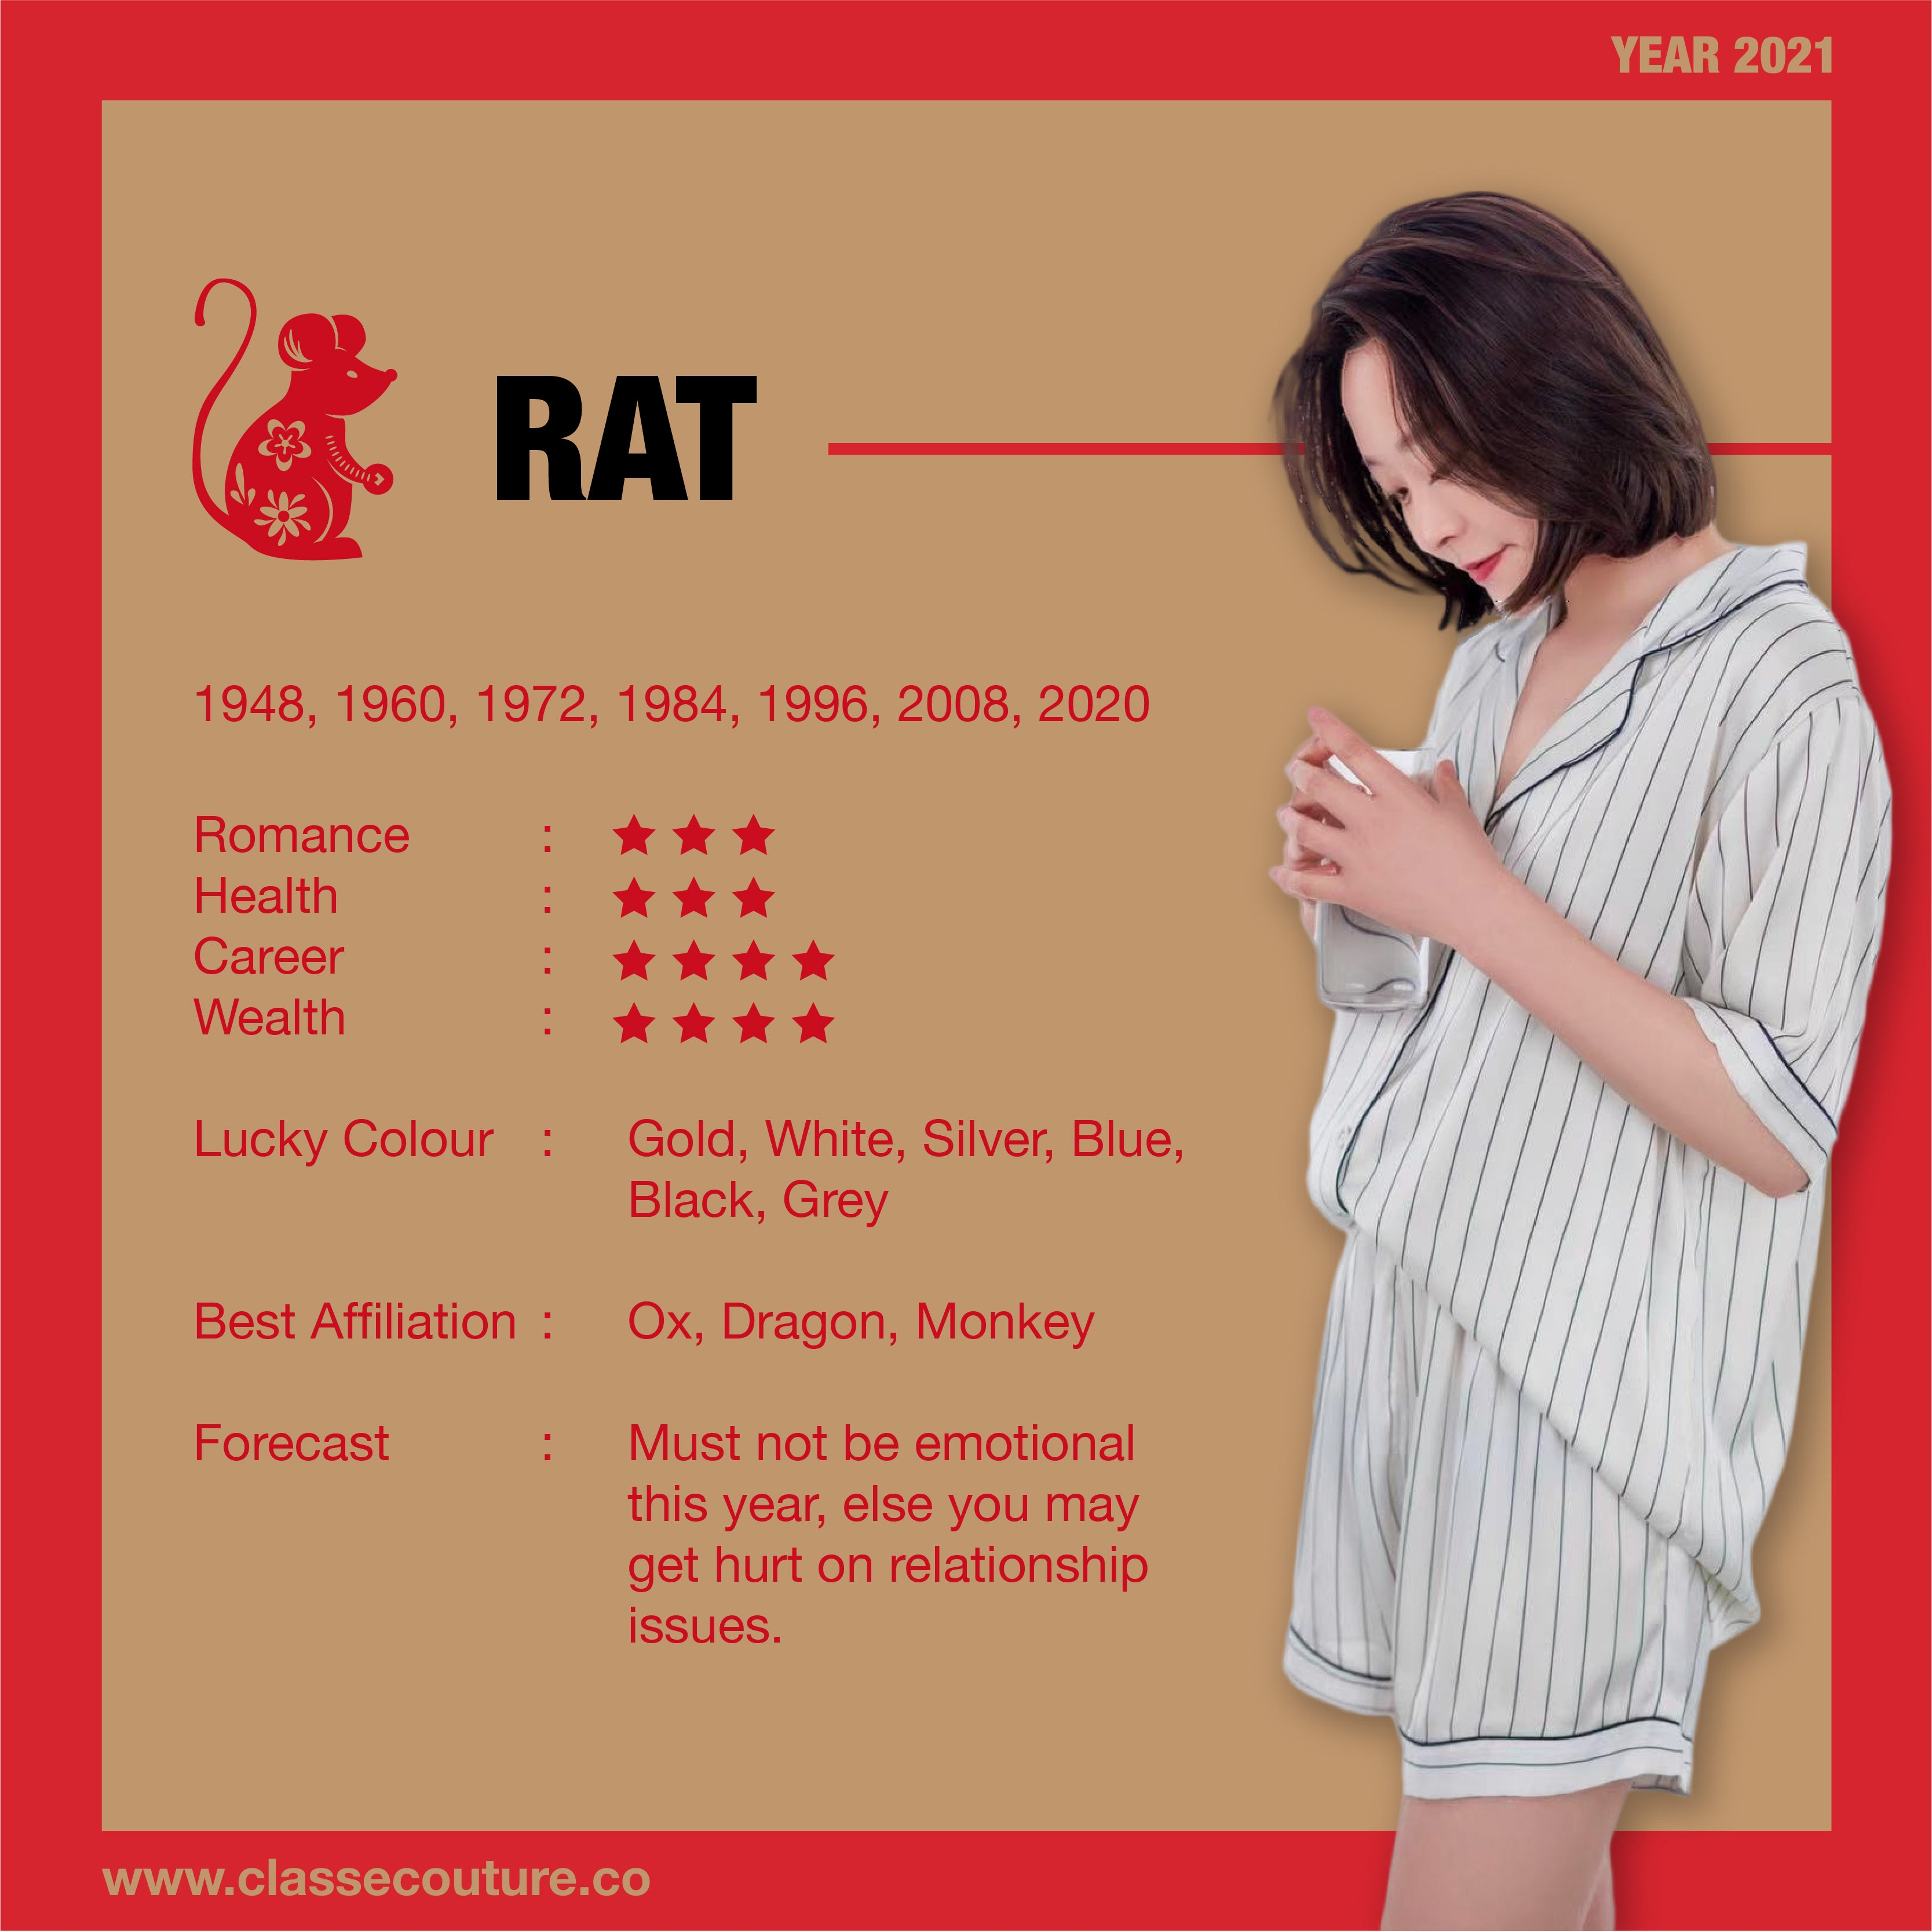 Chinese Horoscope year 2021 - year of the Ox. Yearly Feng Shui forecast and summarises about Rat Horoscope in year 2021!